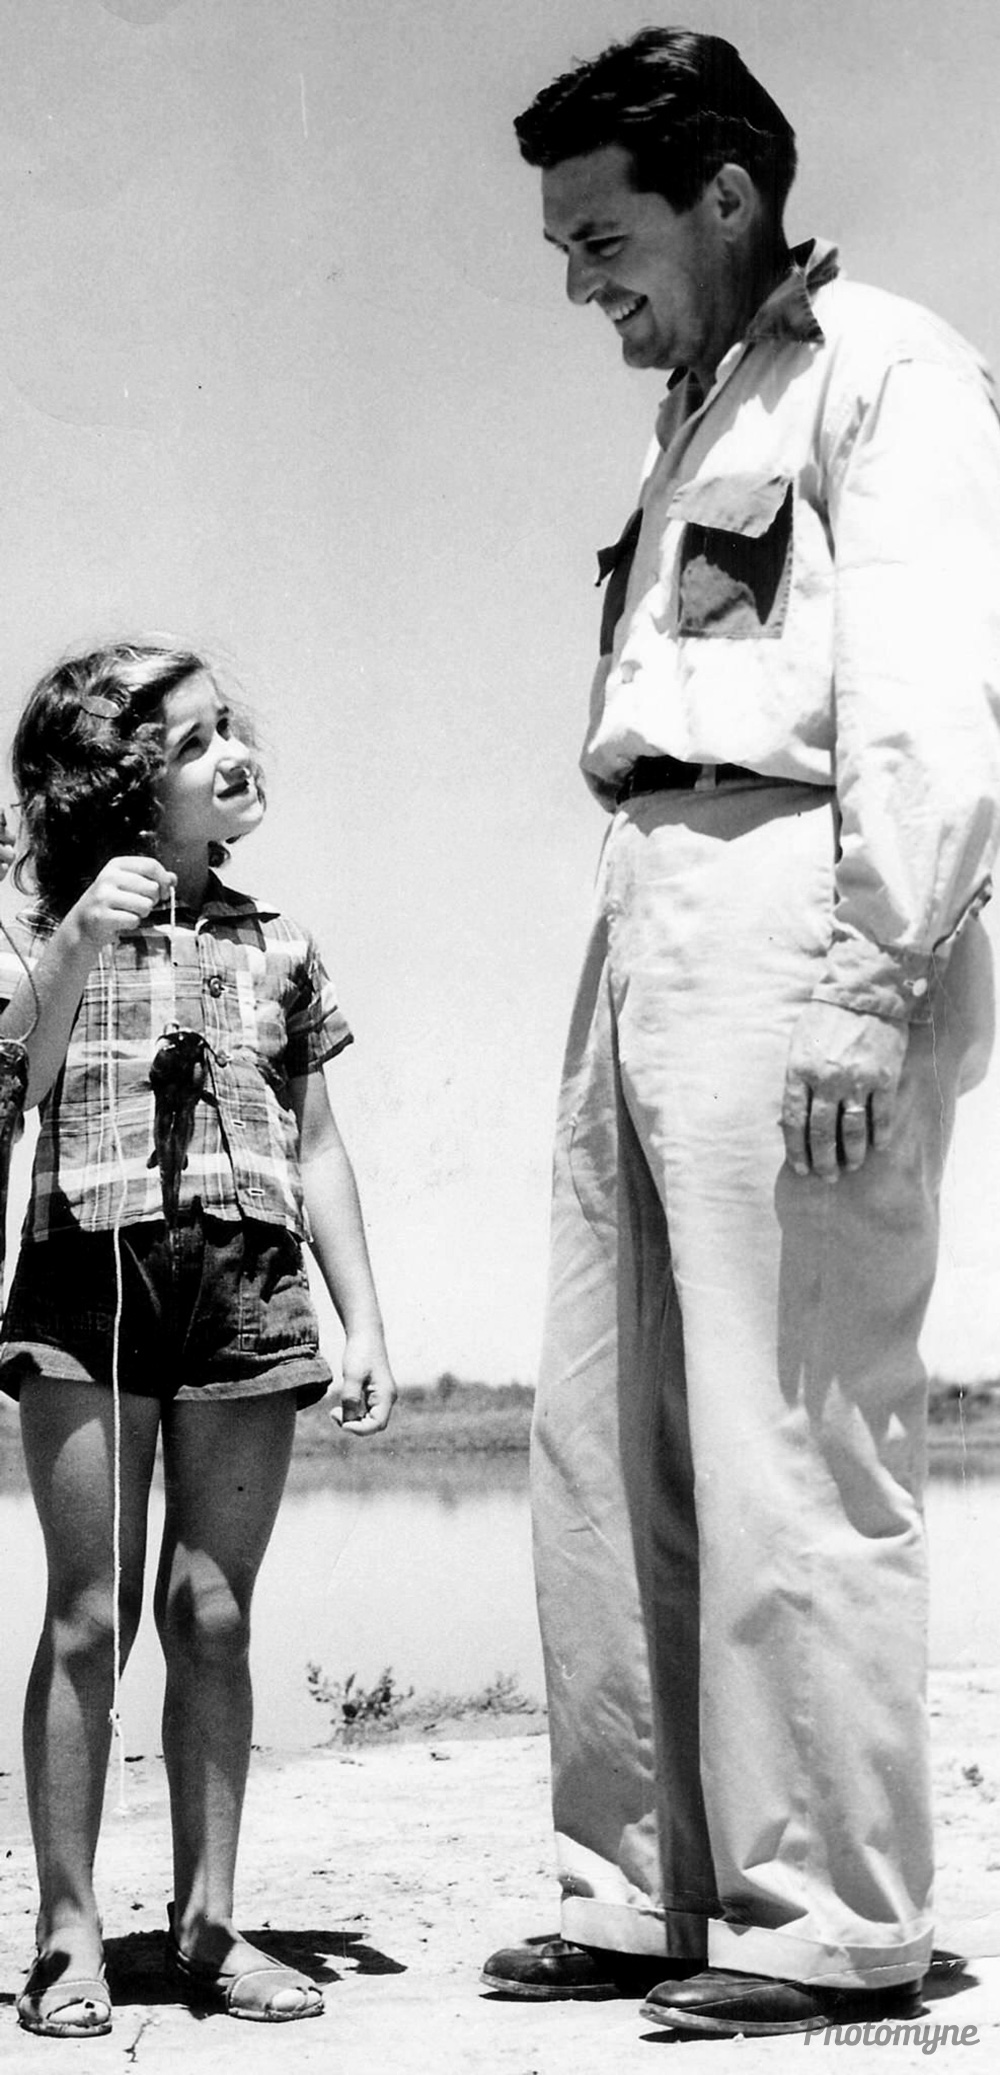 Daddy's Girl, 1954, Hugoton, Kansas, US